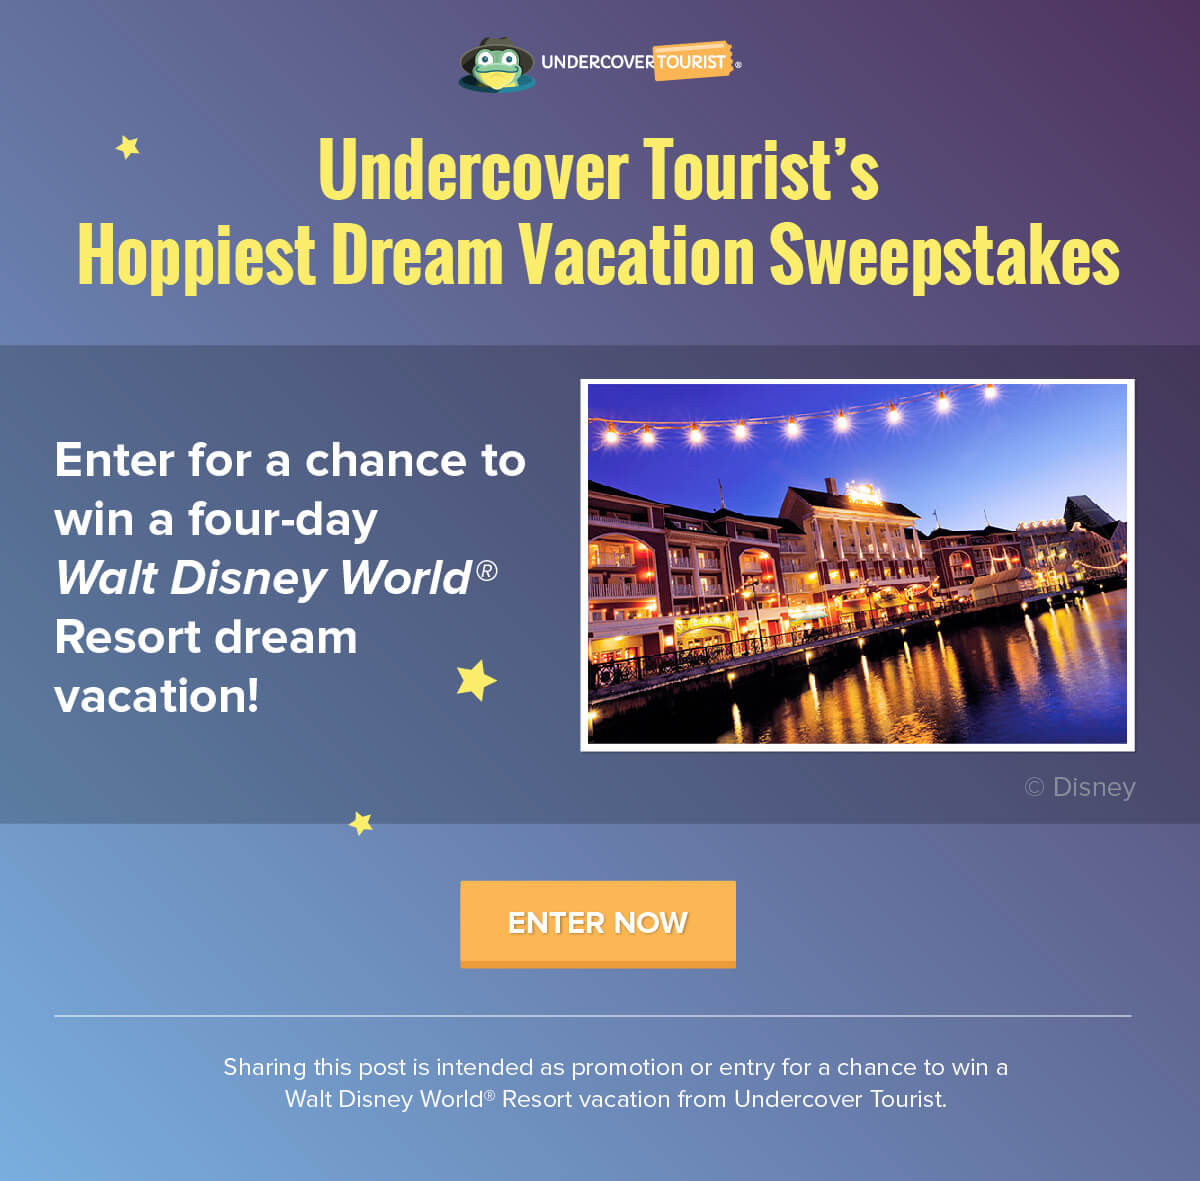 Enter Undercover Tourist's Hoppiest Dream Vacation Sweepstakes